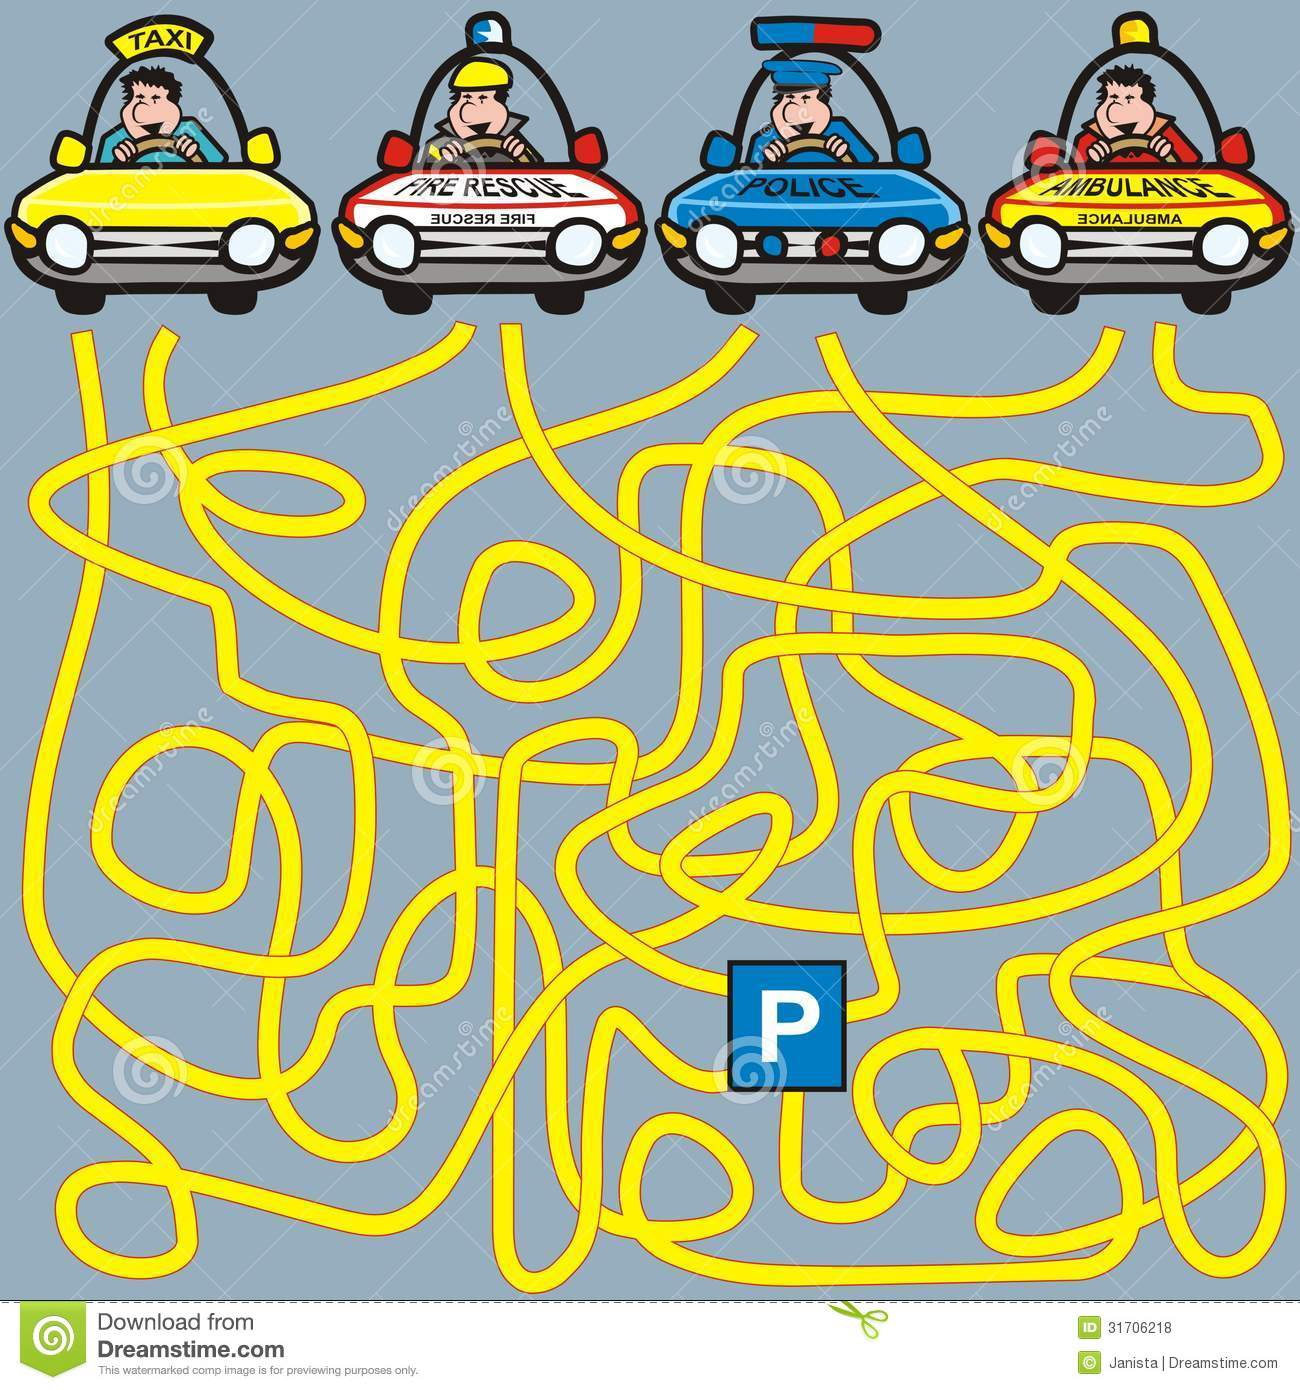 Parking Games For Adults 120